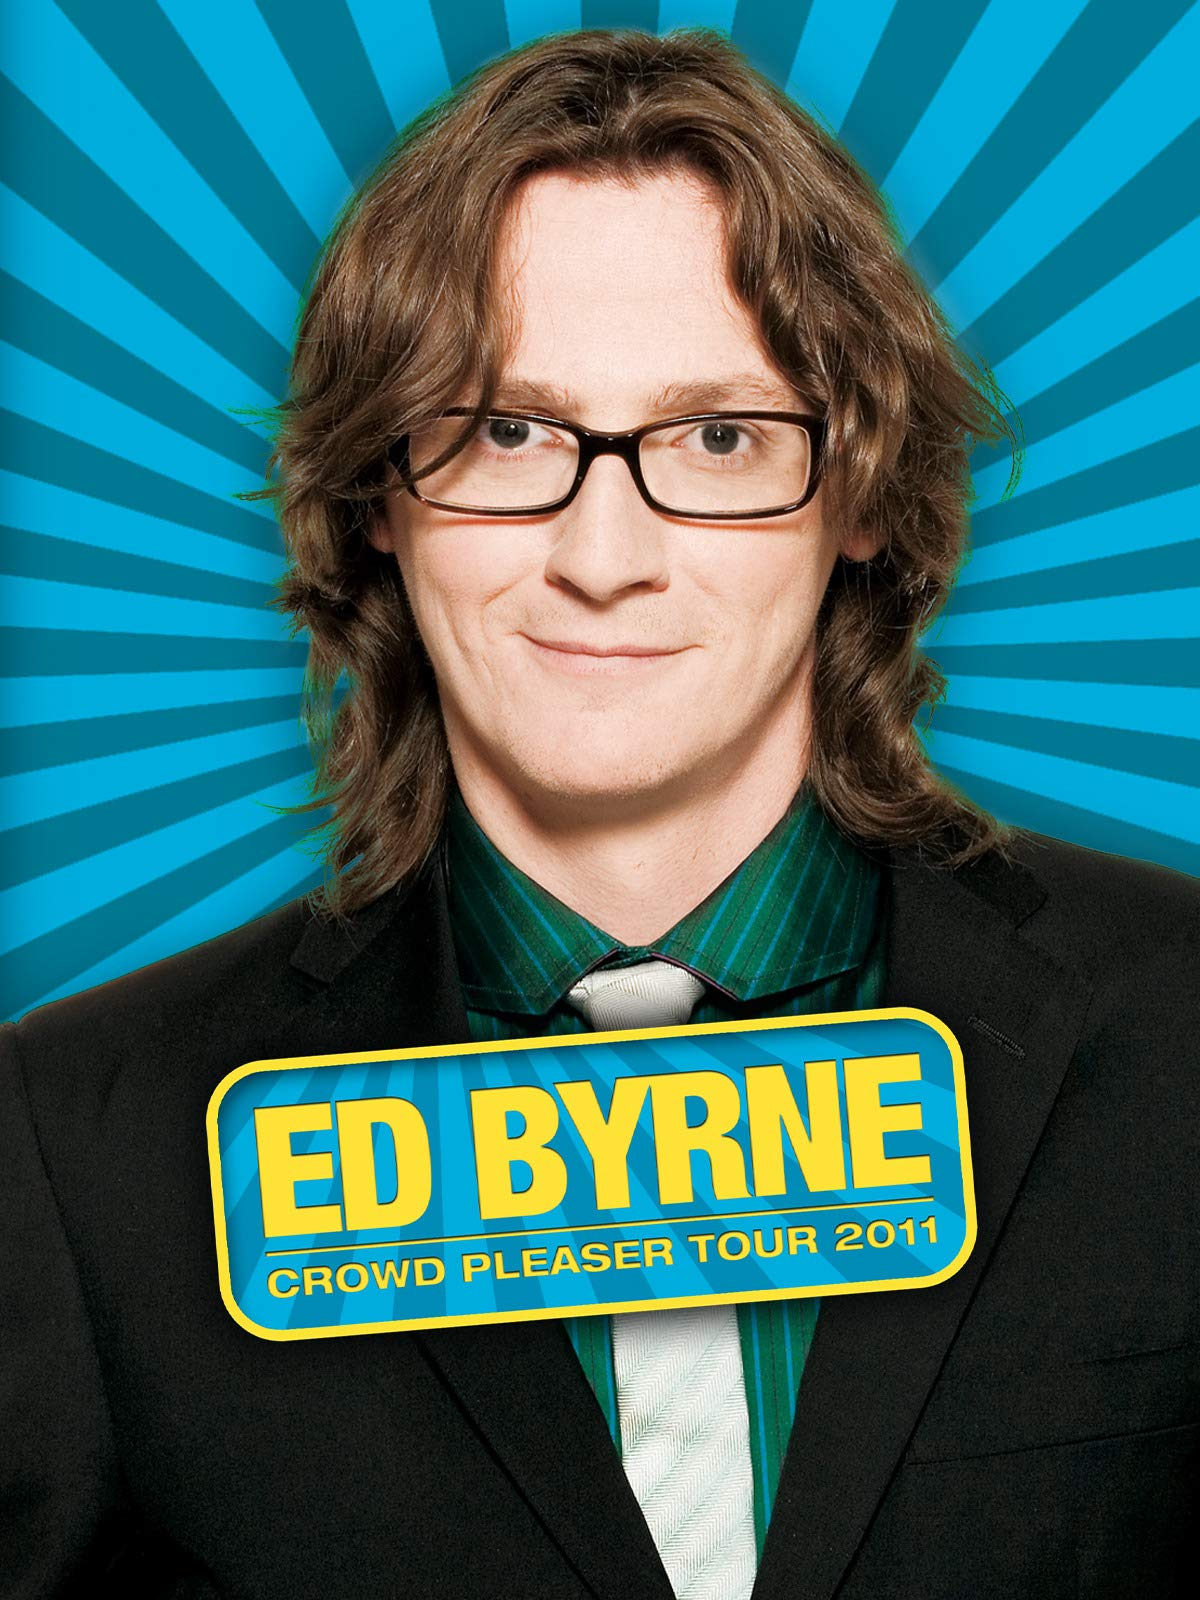 Ed Byrne Crowd Pleaser